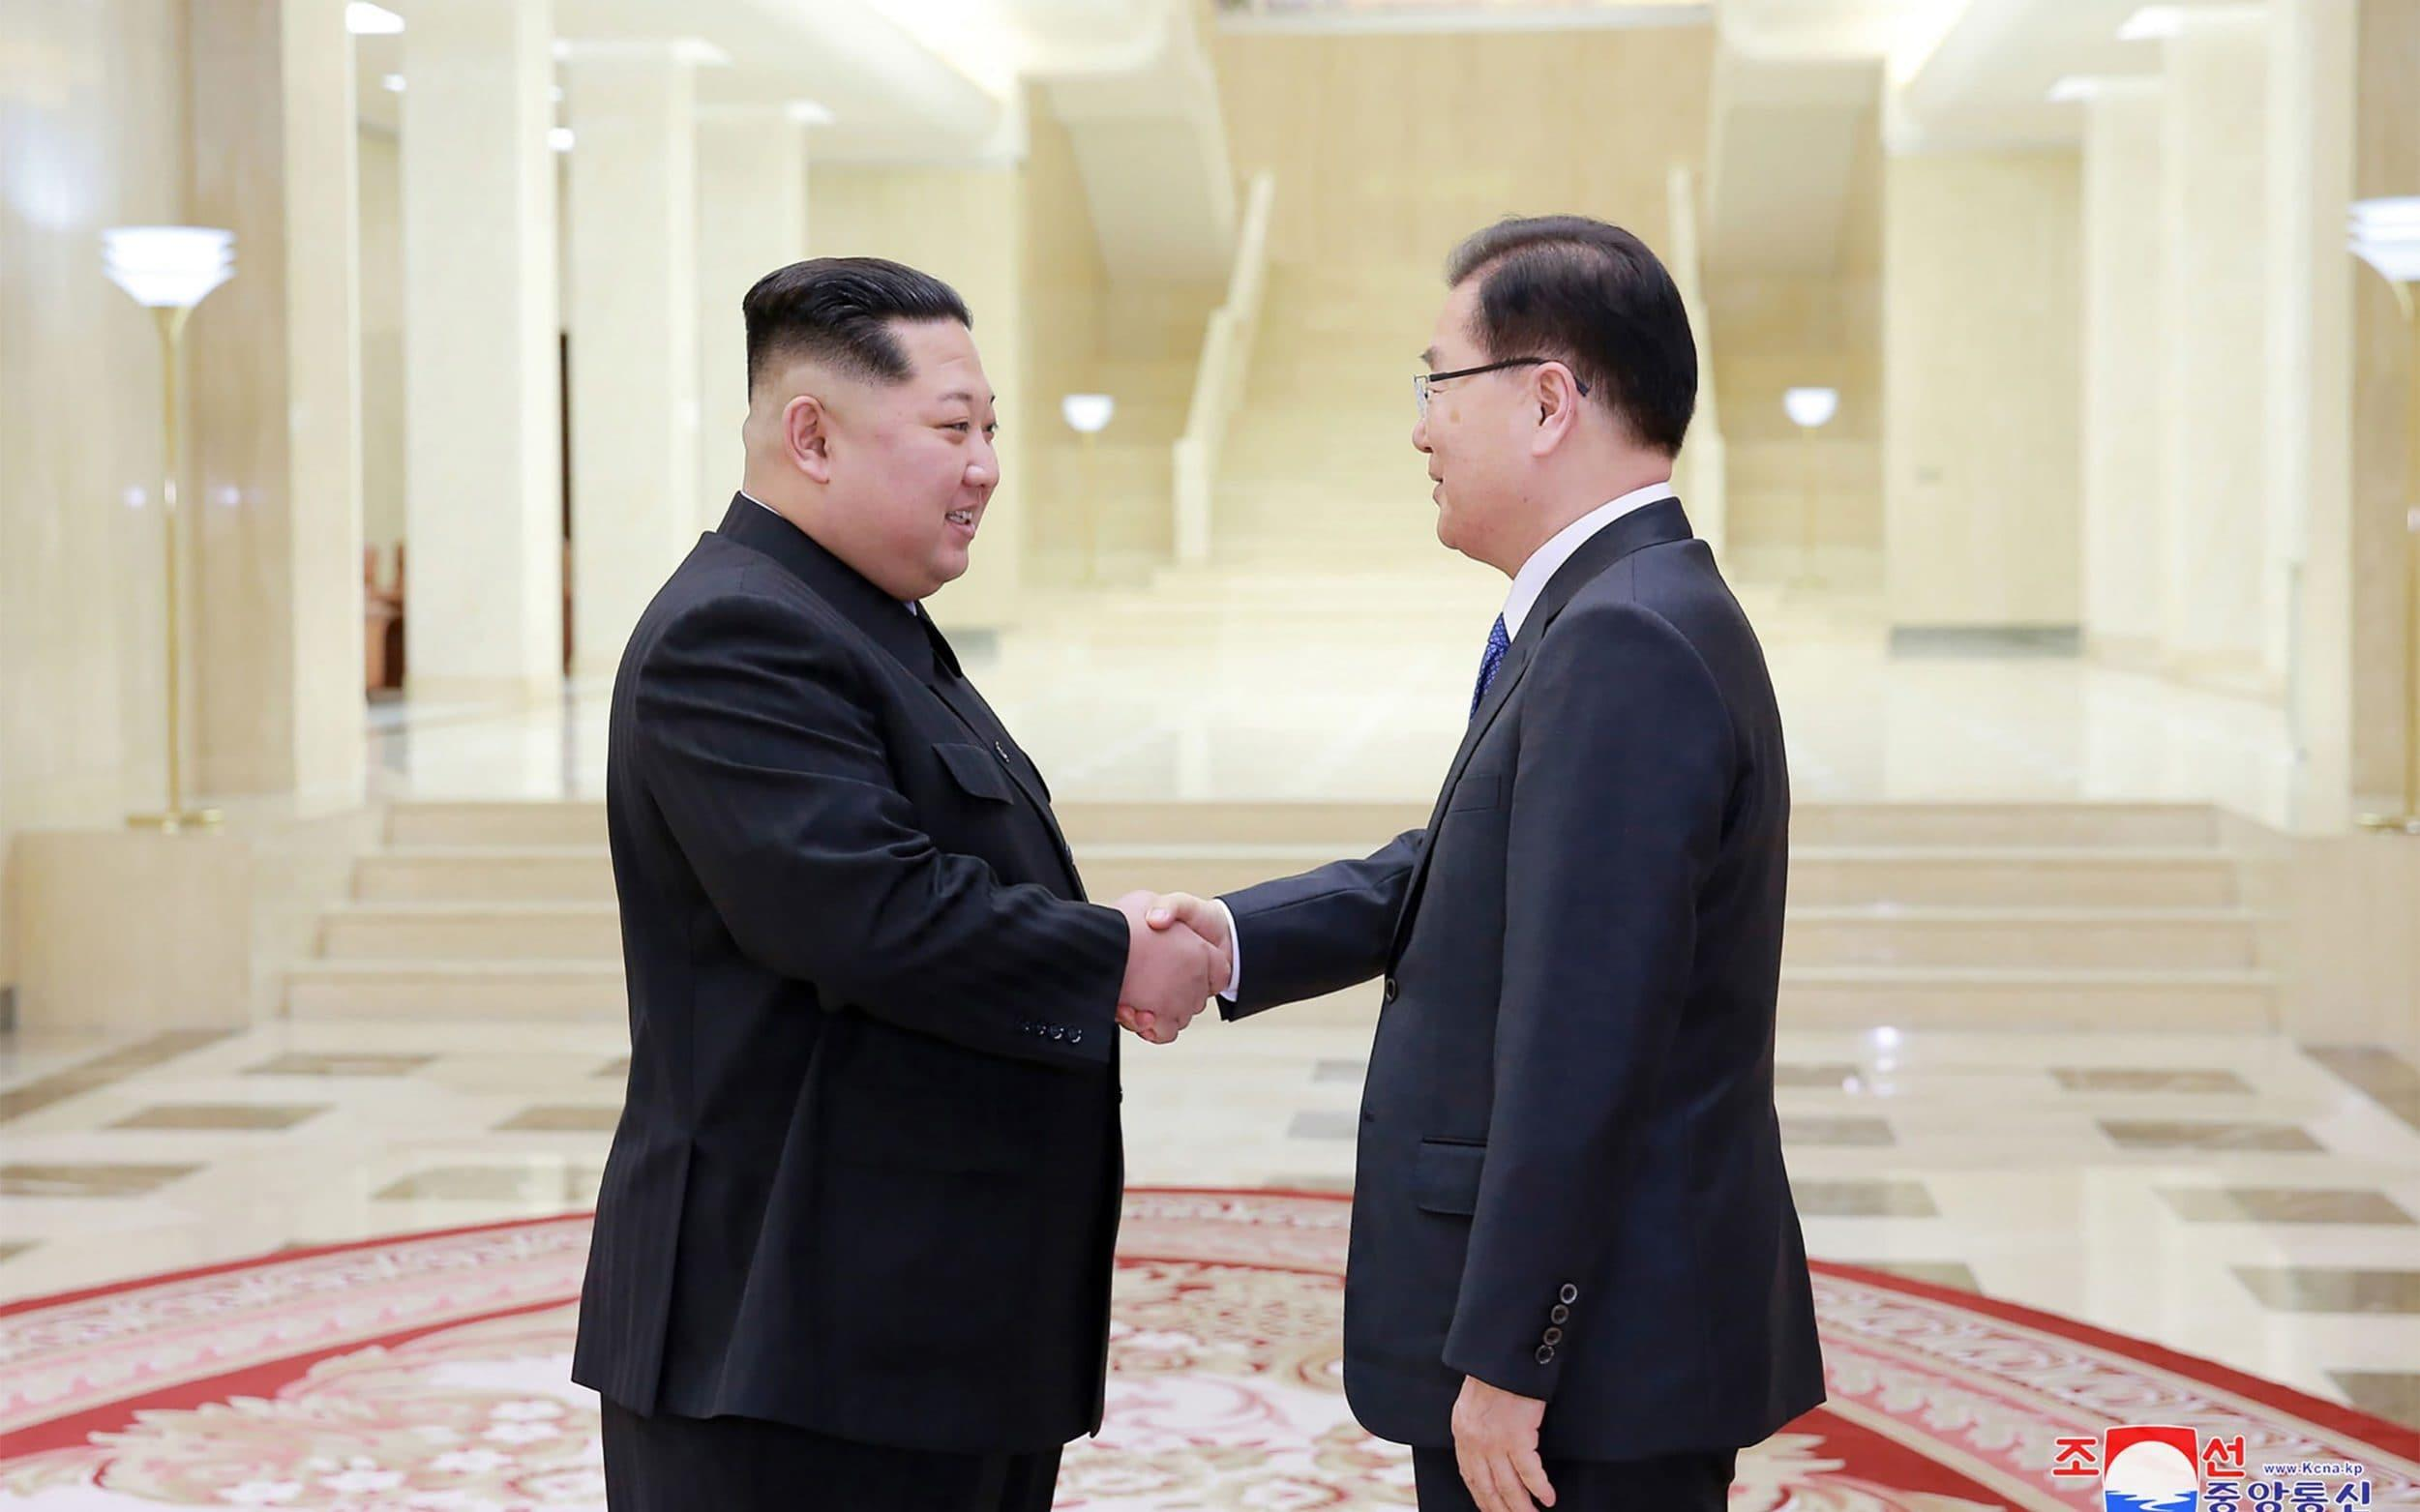 North Korea 'willing to give up nuclear weapons' as summit agreed between Kim Jong-un and South Korean president